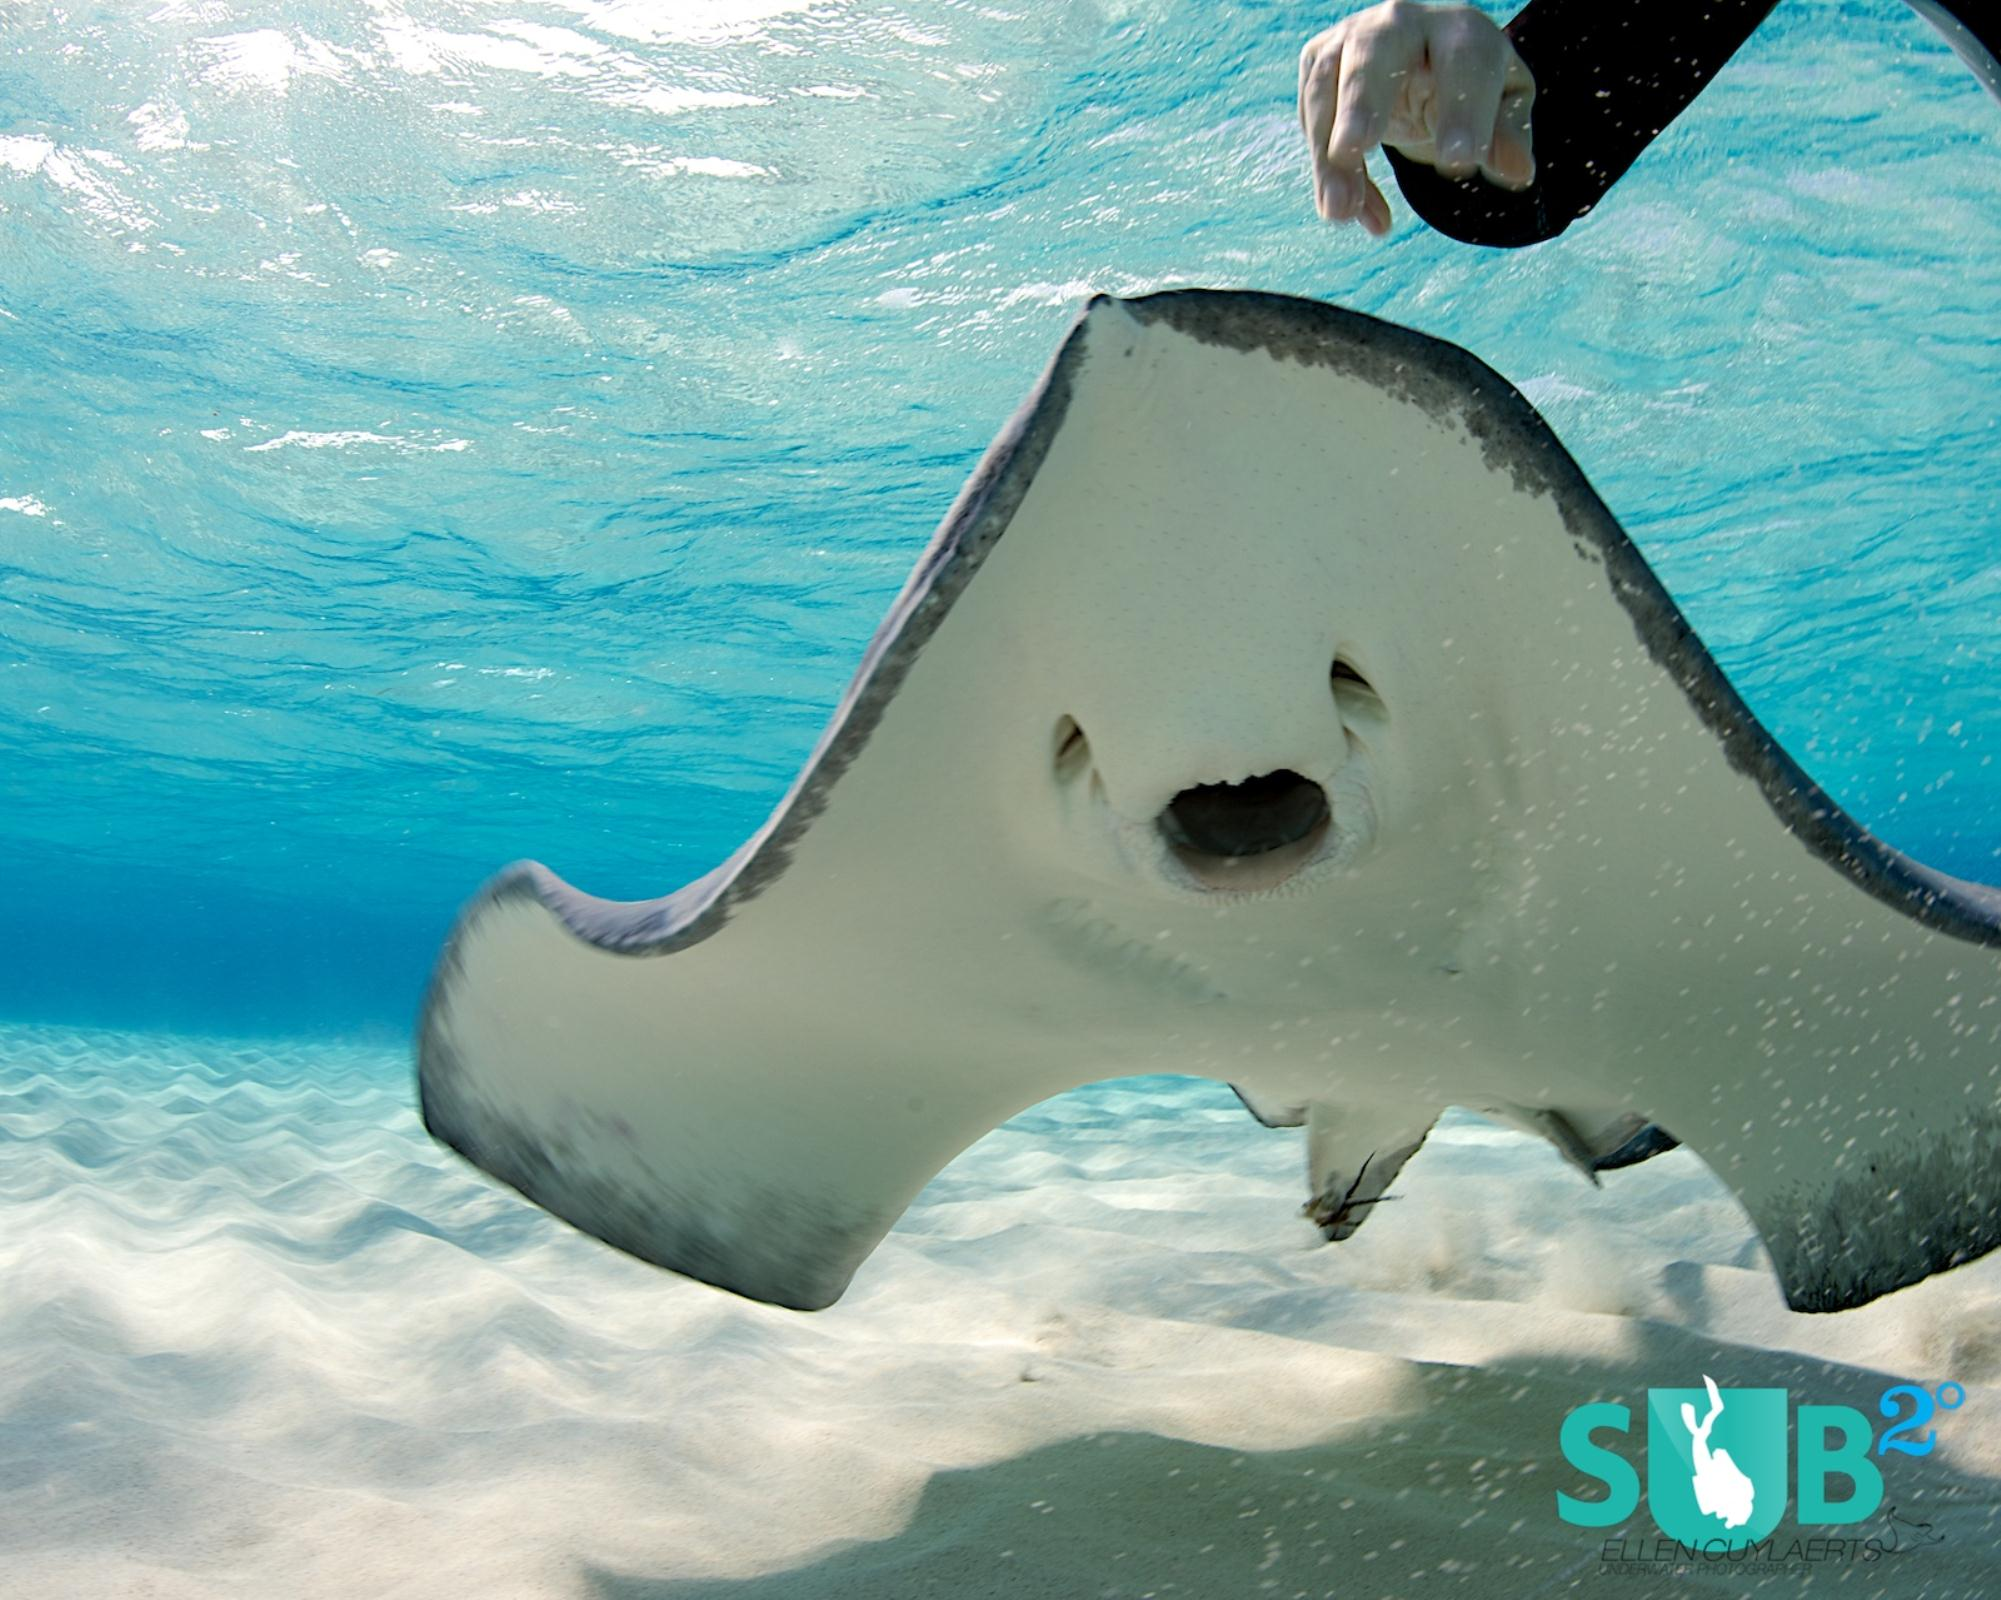 Stingrays usually graze on the sandy bottom and when they find a mollusk, their stubby teeth are strong enough to crack the shell.